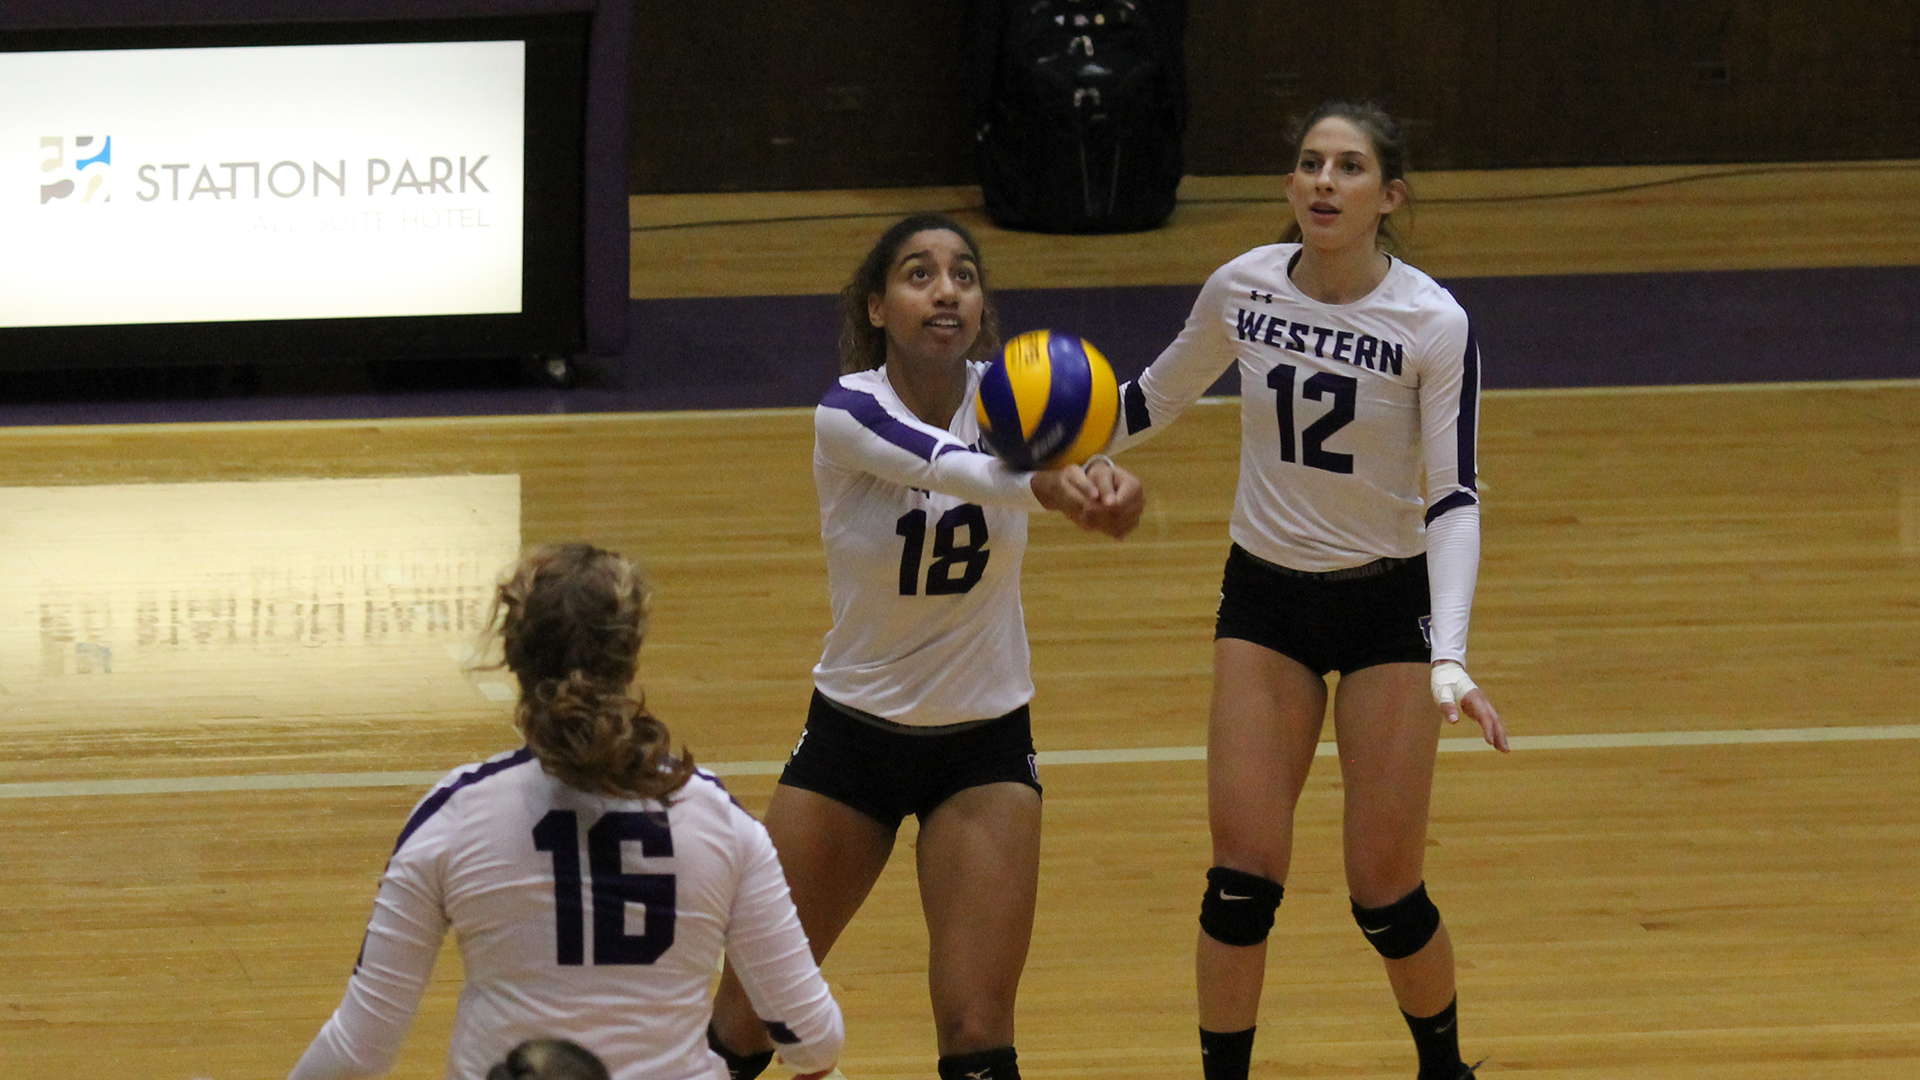 Western looks to stay undefeated this weekend against